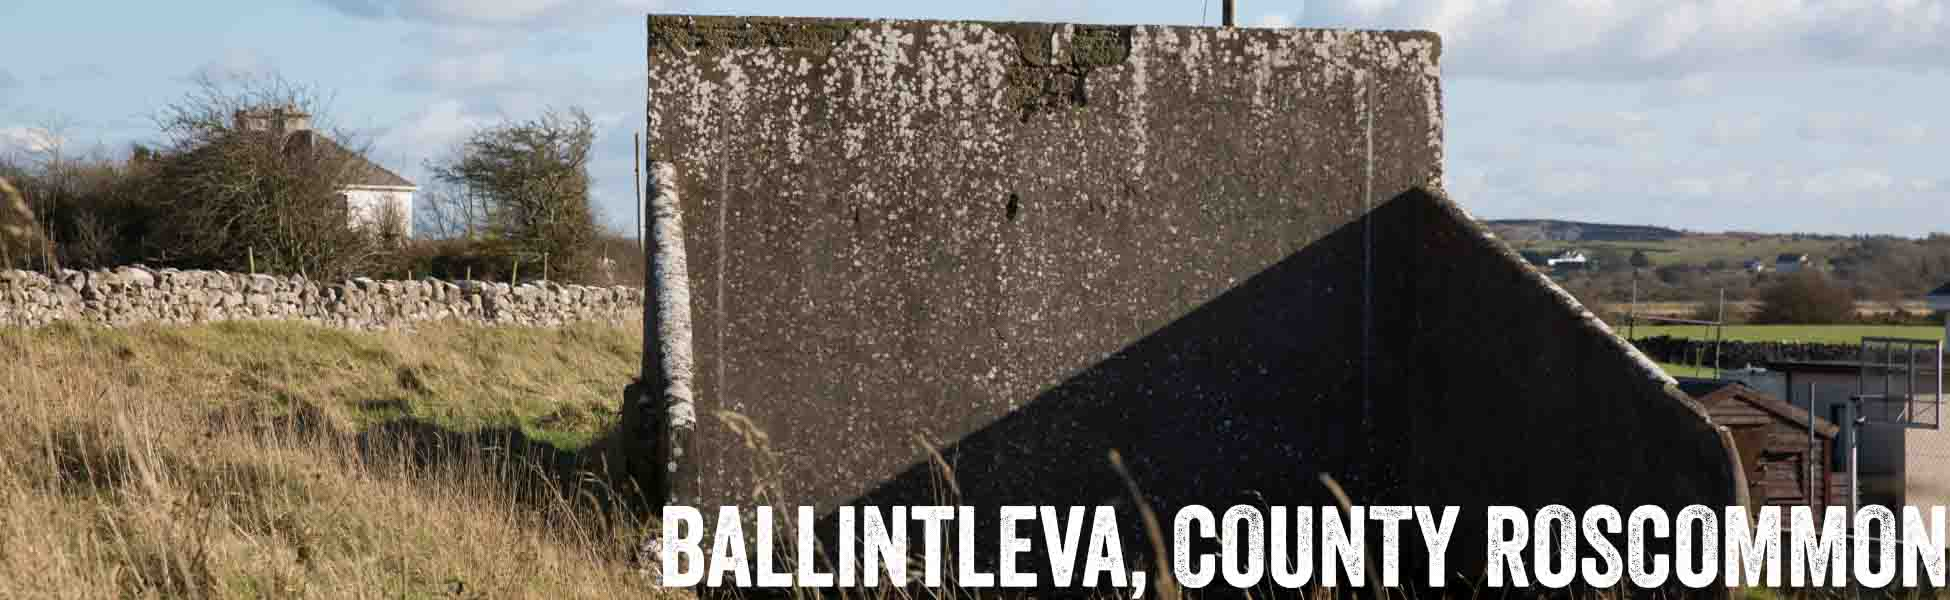 Ballintleva County Roscommon Adopt a Monument Ireland